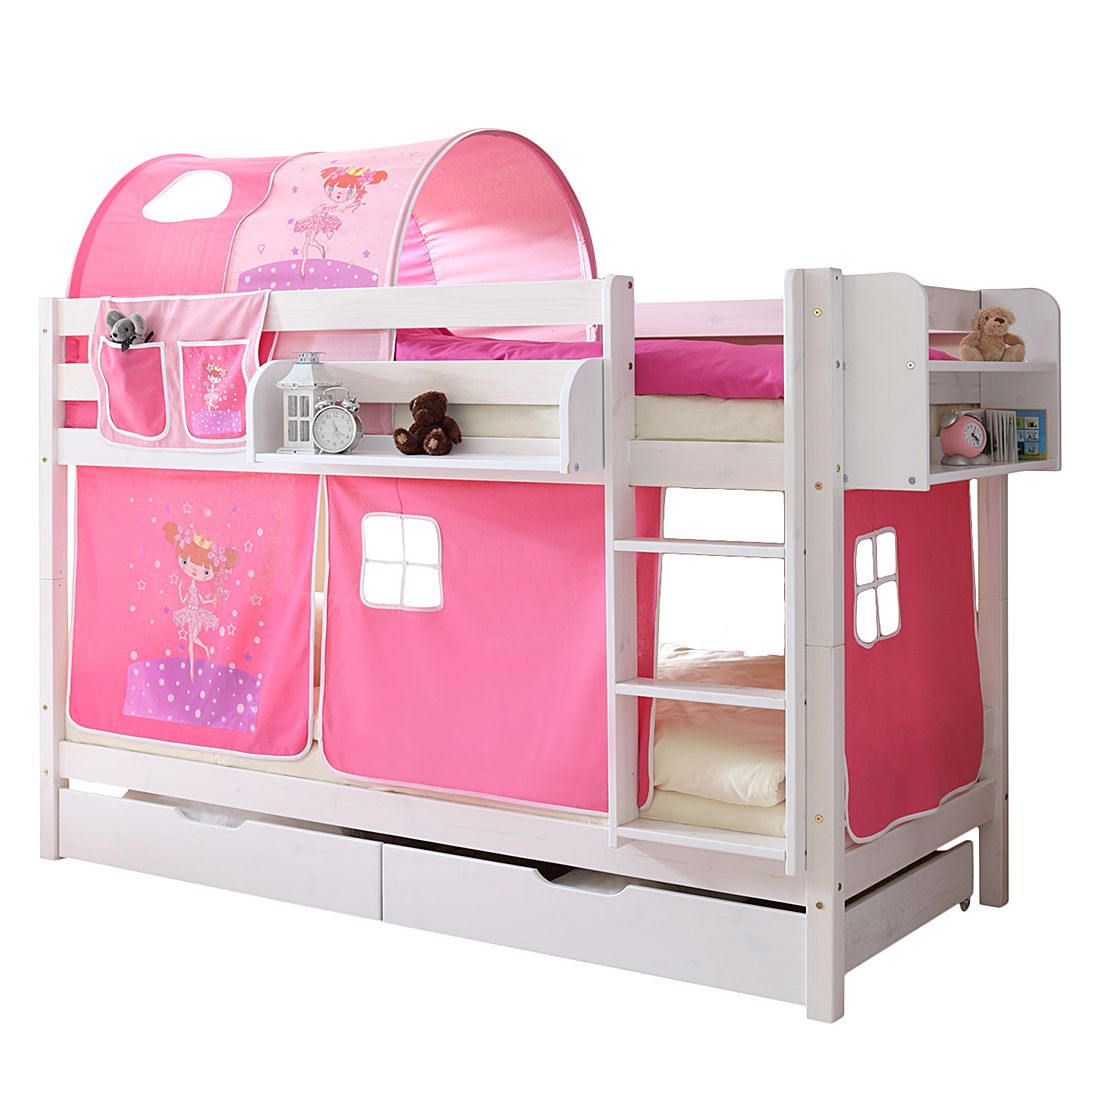 Home 24 - Lit superposé marcel ii - pin massif rose / vif, ticaa